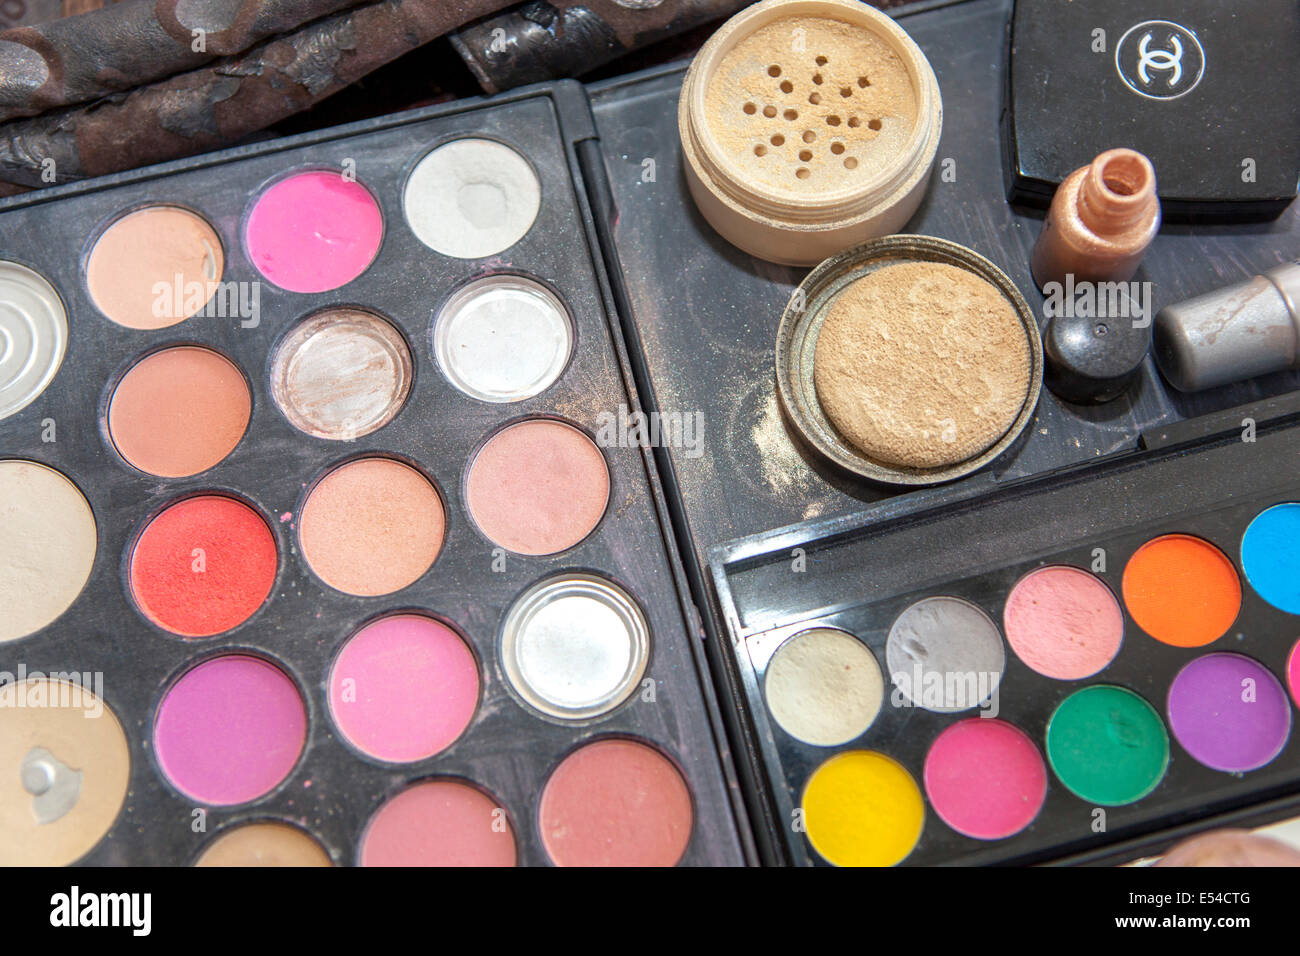 Closeup of an eyeshadow palette - Stock Image